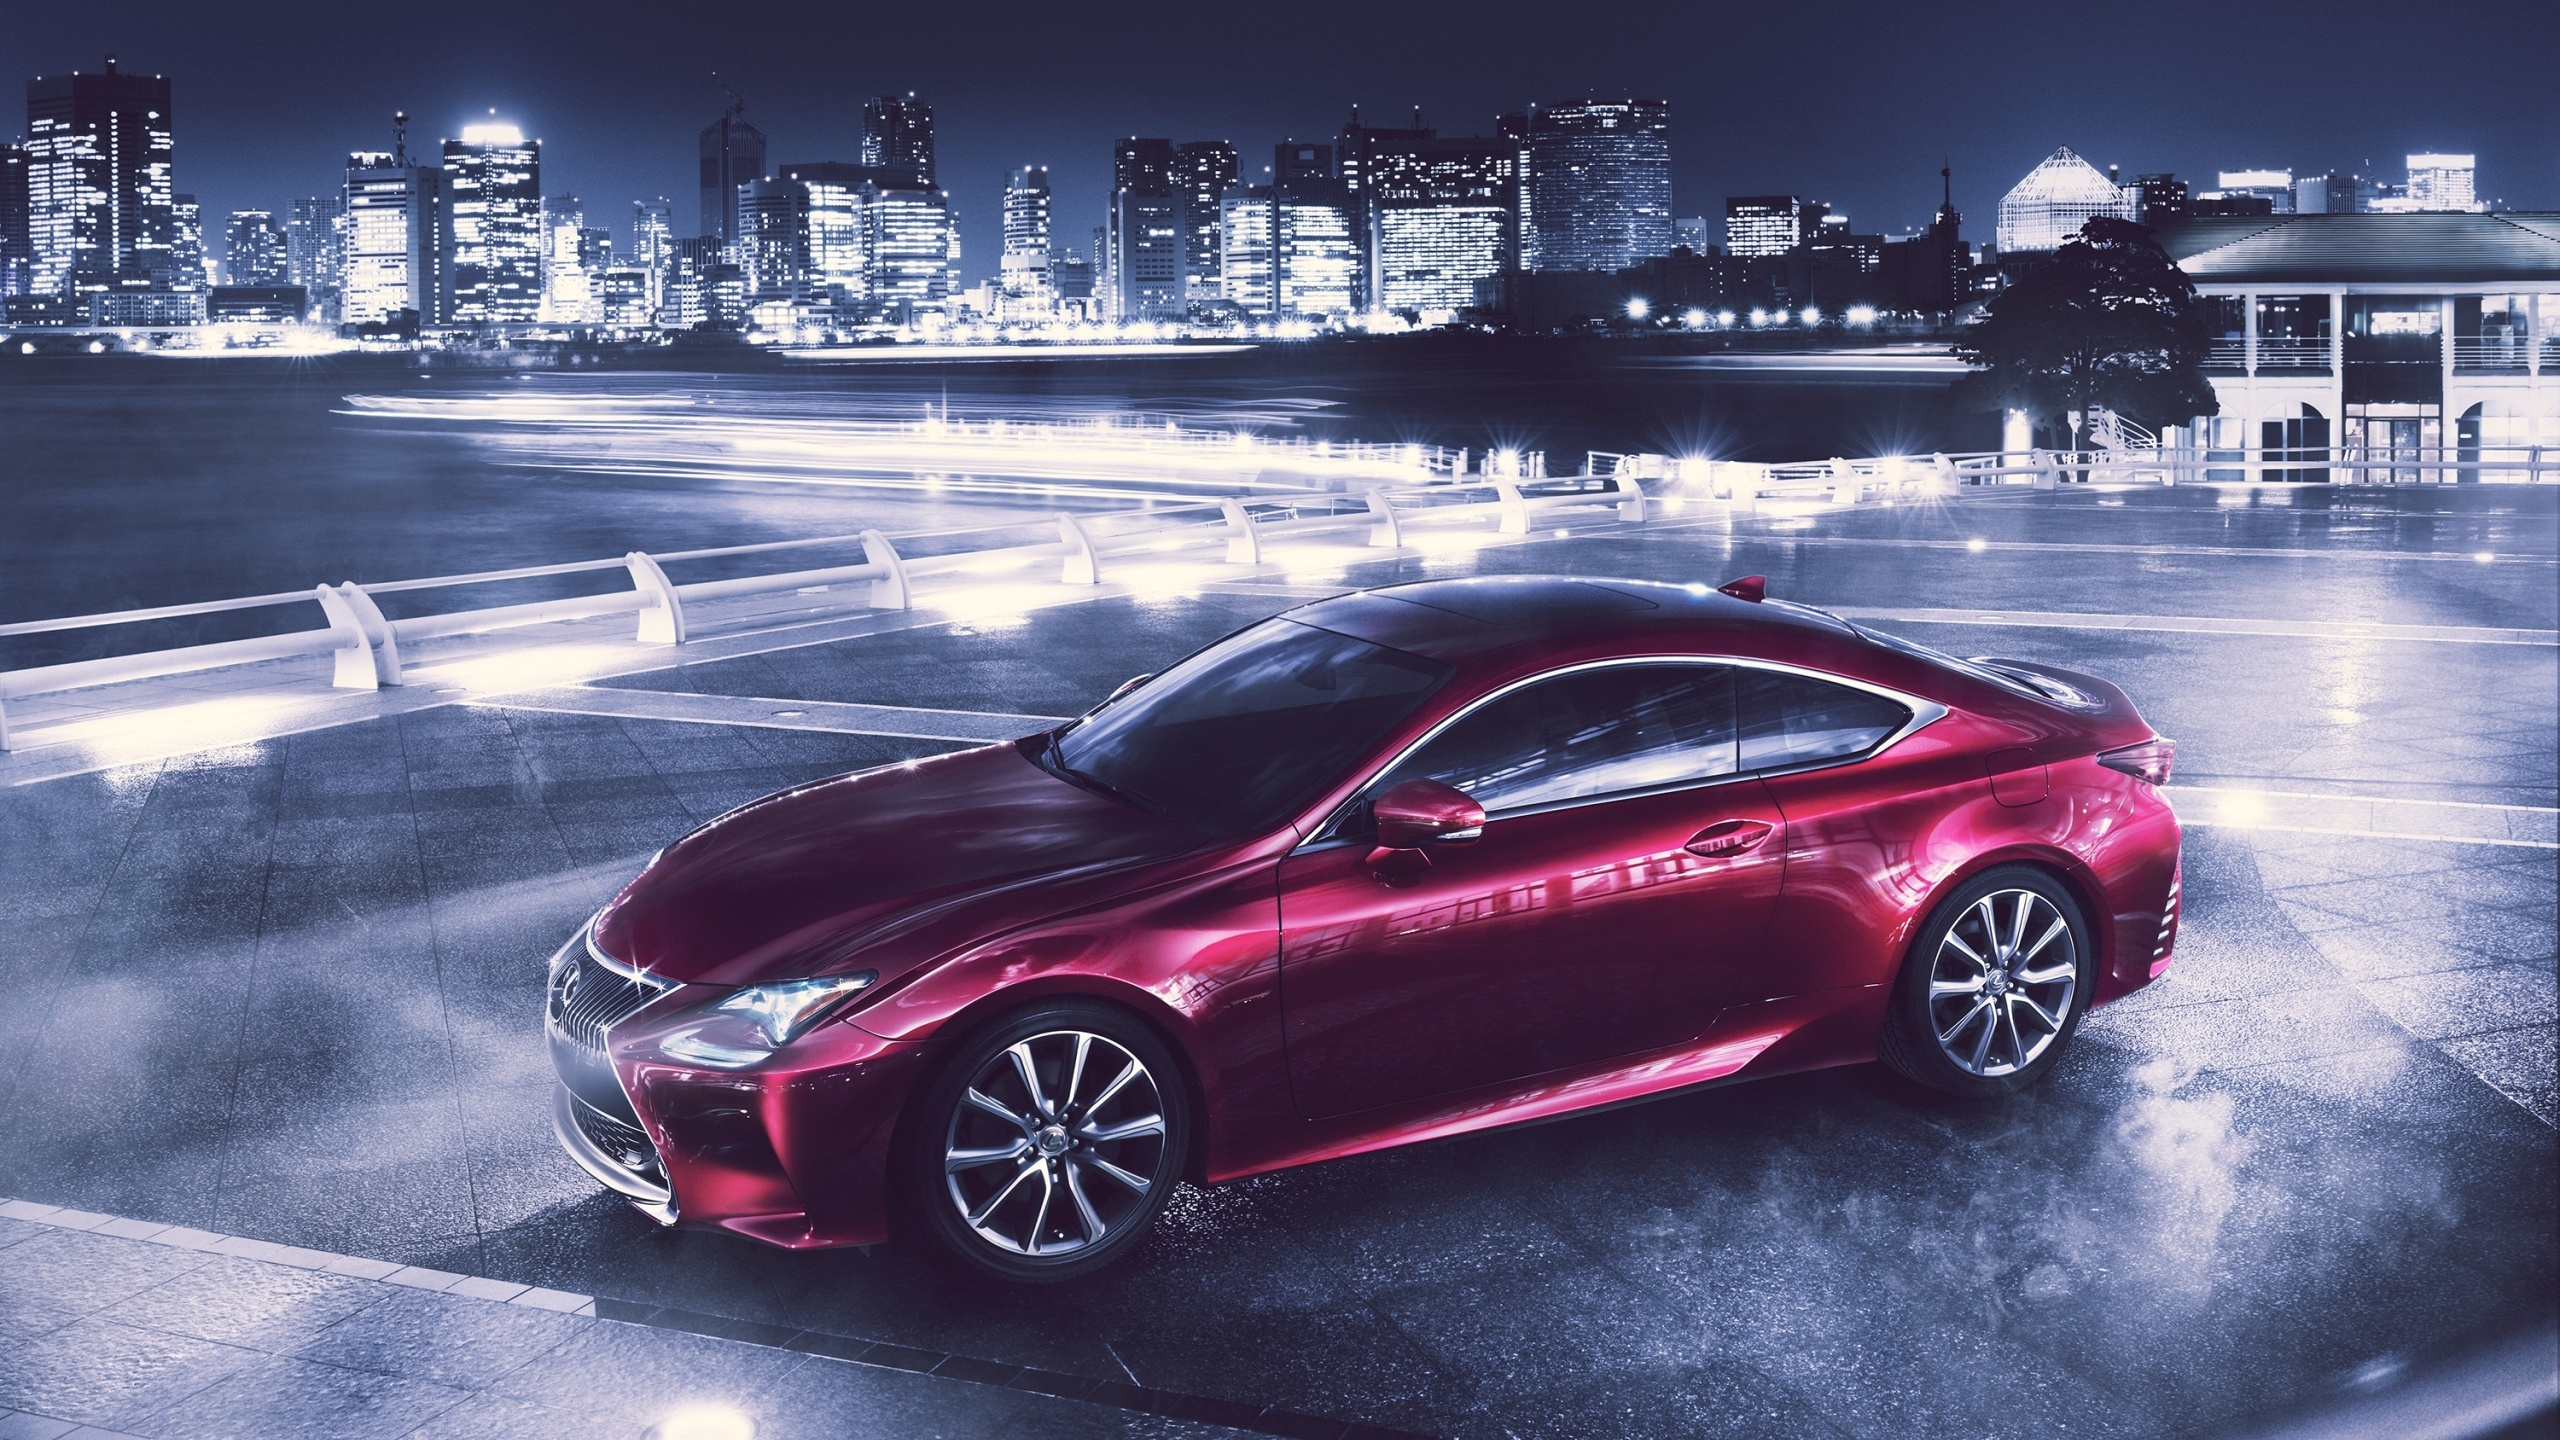 Lexus RC Coupe 2013 Wallpapers   2560x1440   1462064 2560x1440